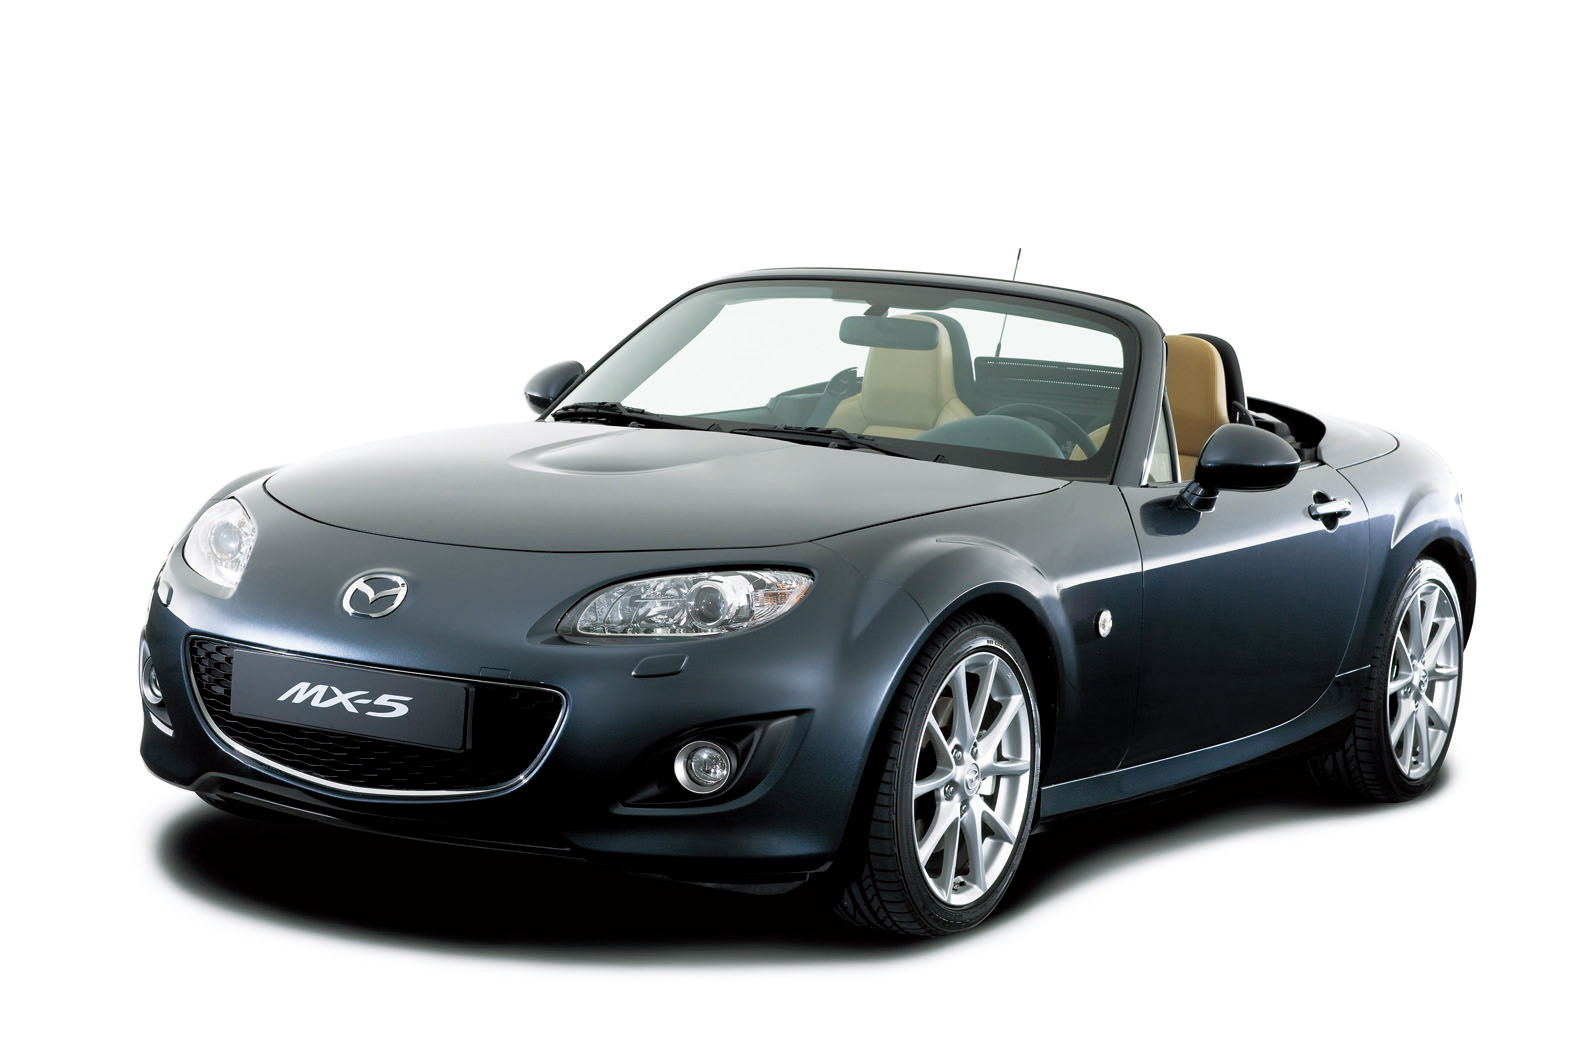 Mazda and Fiat join forces to create new roadster